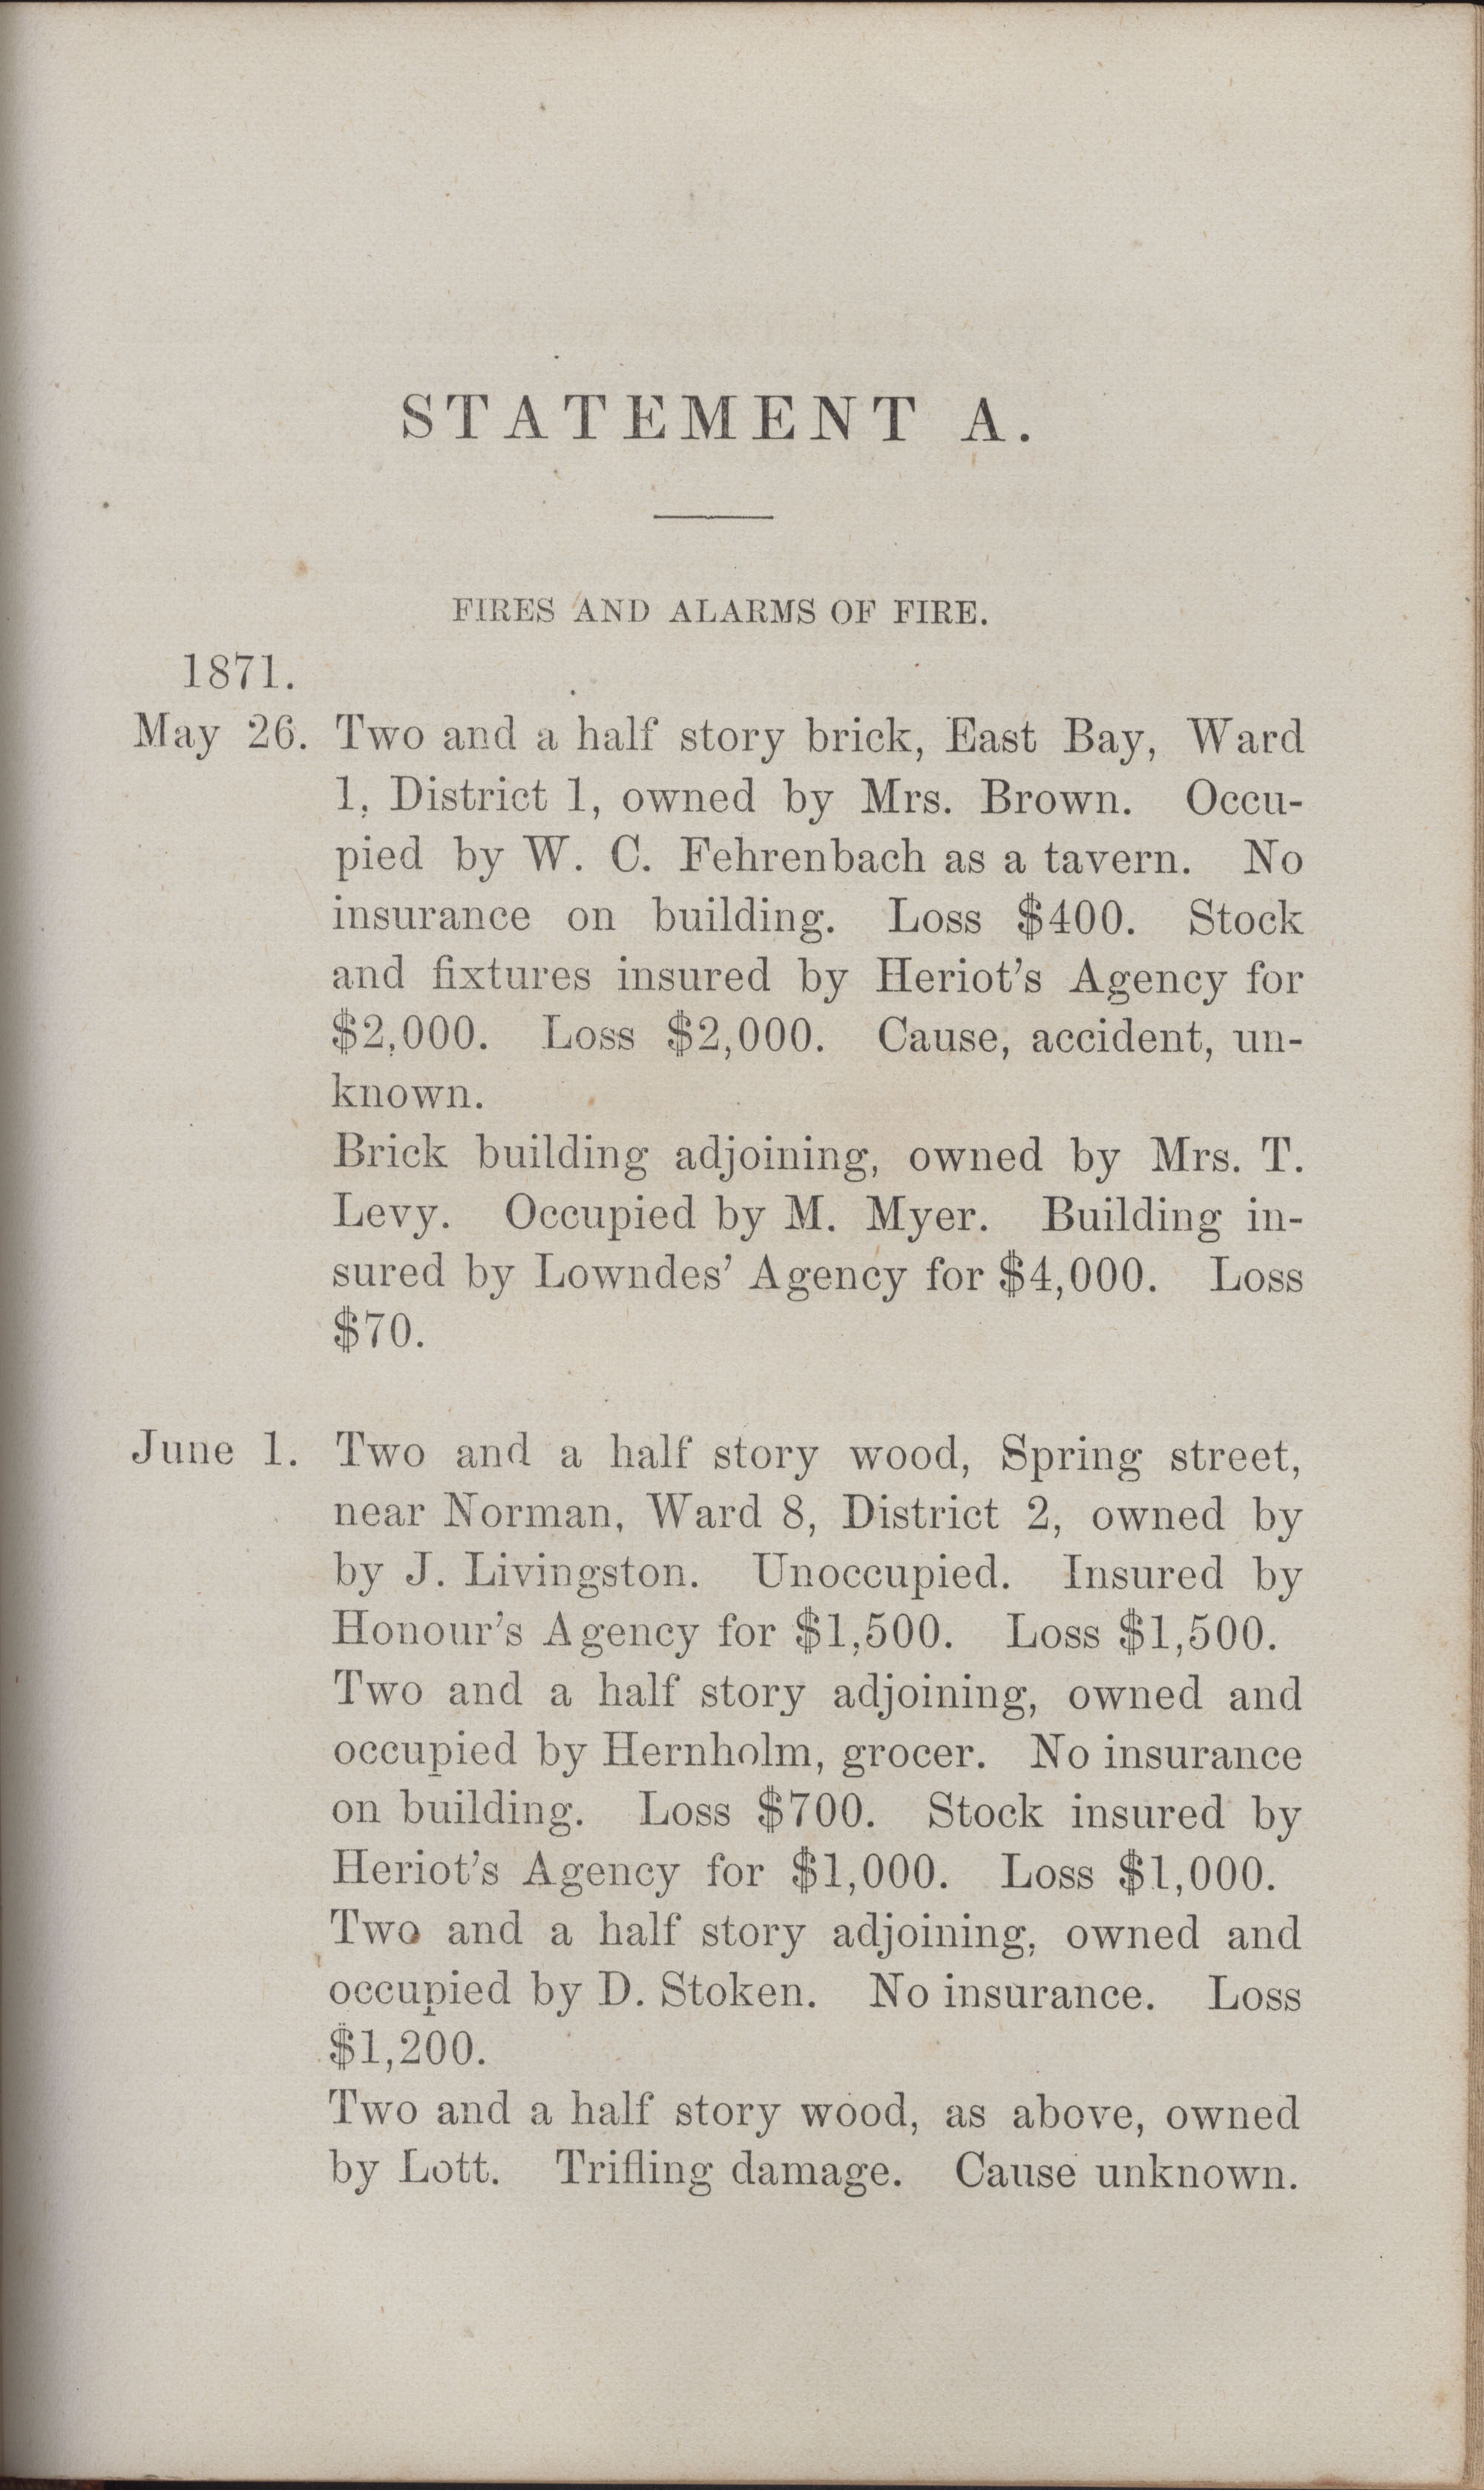 Annual Report of the Chief of the Fire Department of the City of Charleston, page 408